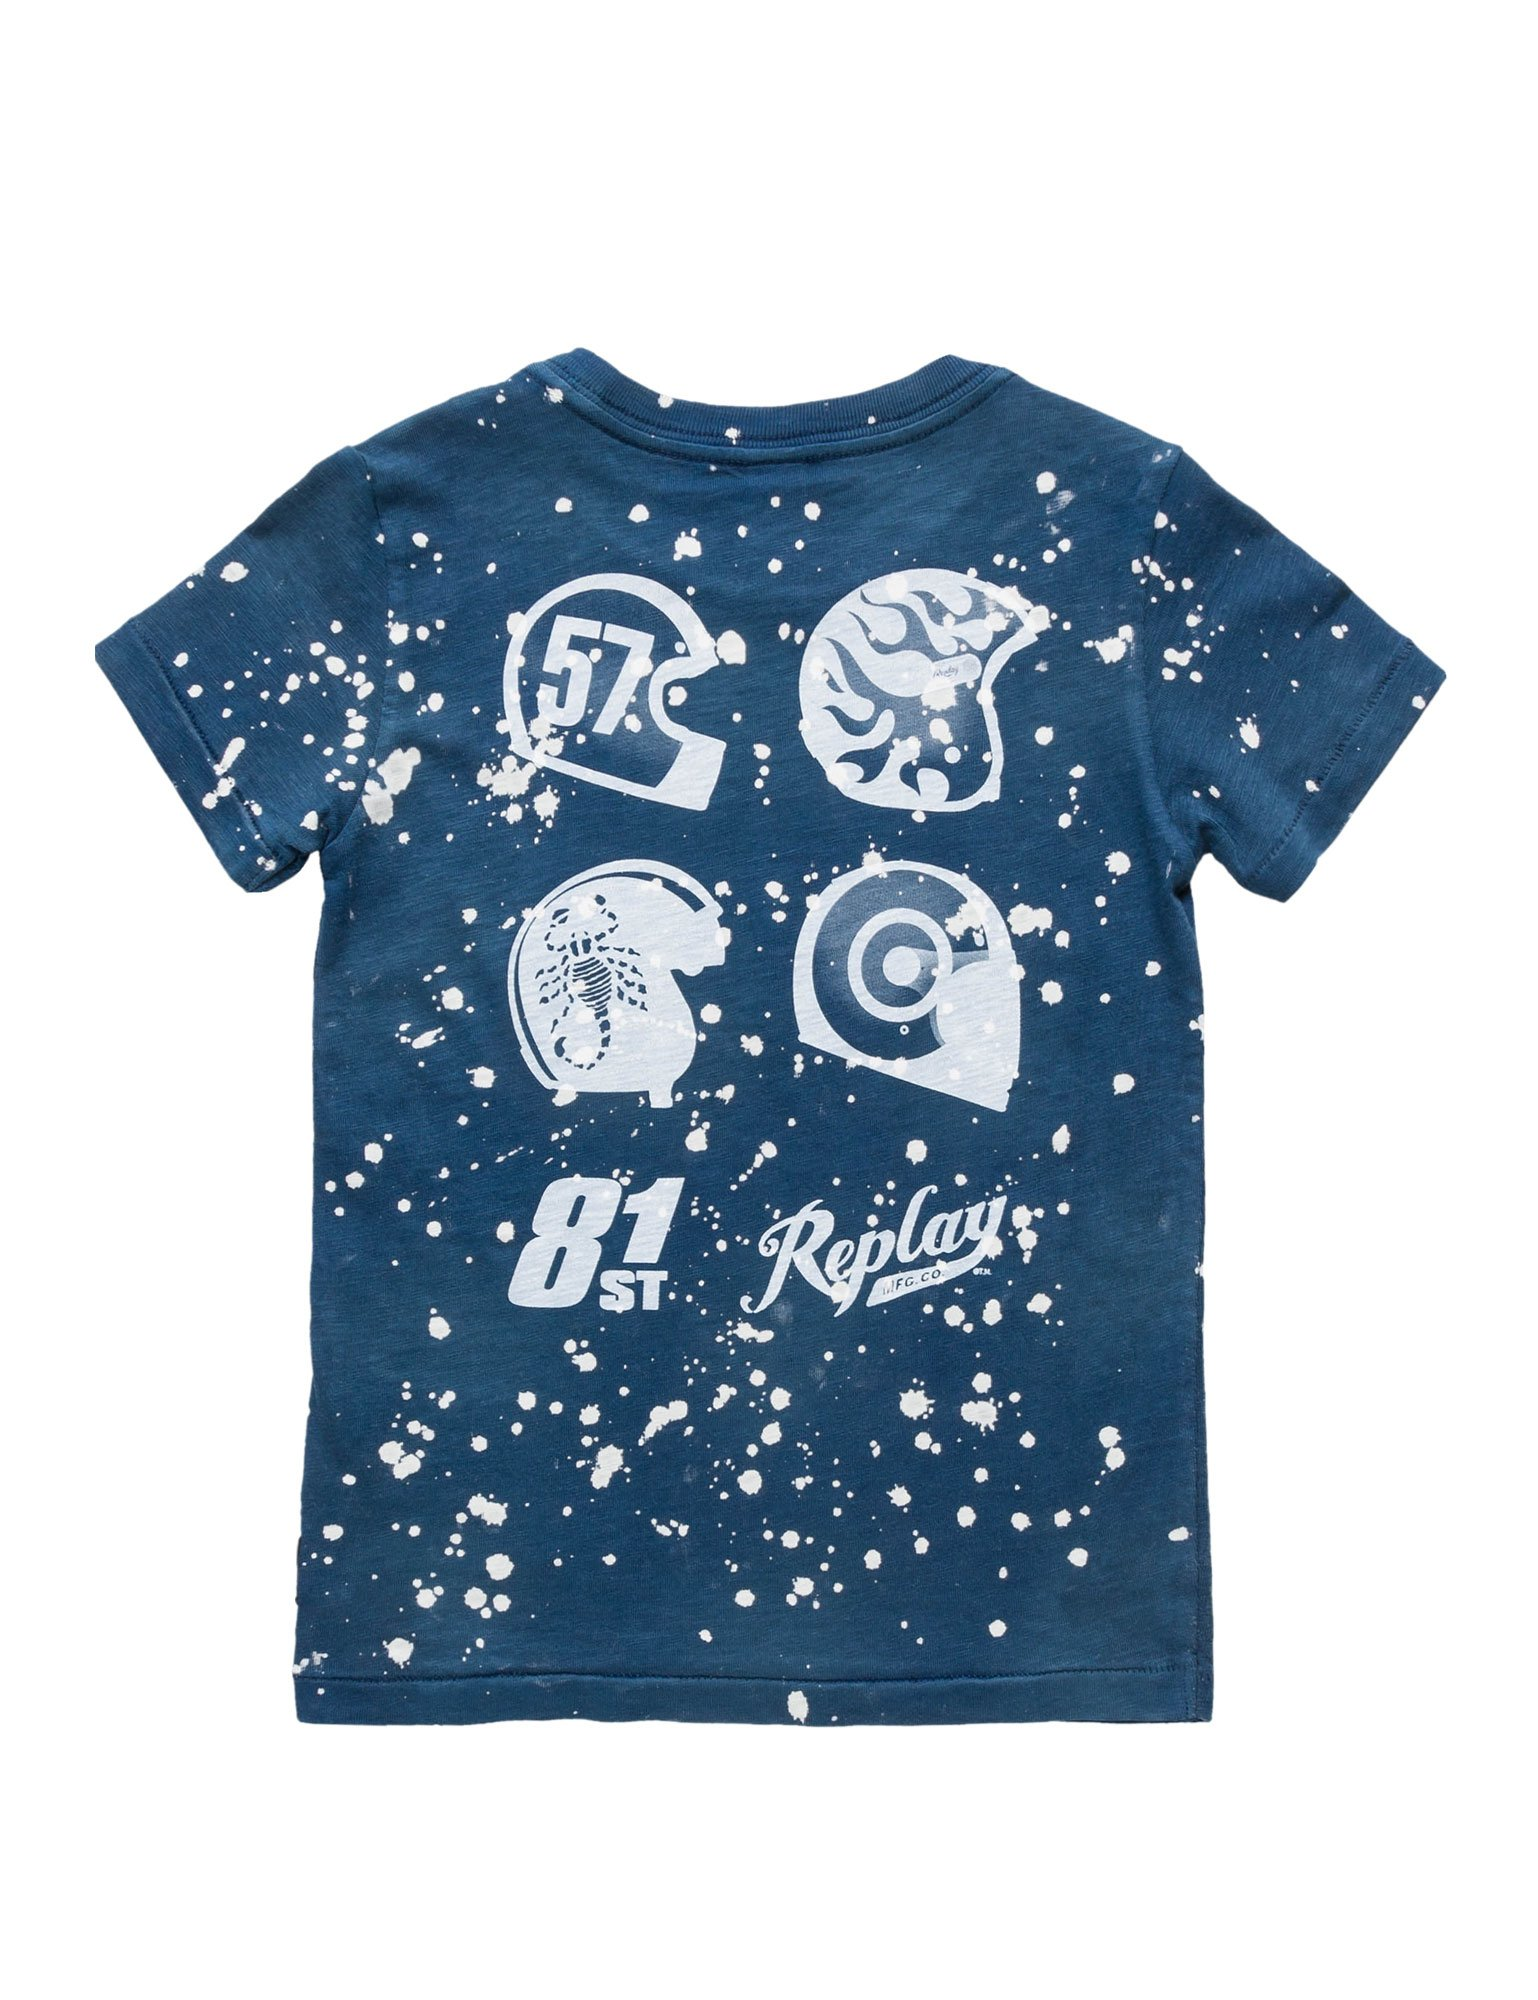 Replay Garment Dyed Slub Jersey Boy's Blue T-Shirt In Size 12 Years Blue by Replay (Image #2)